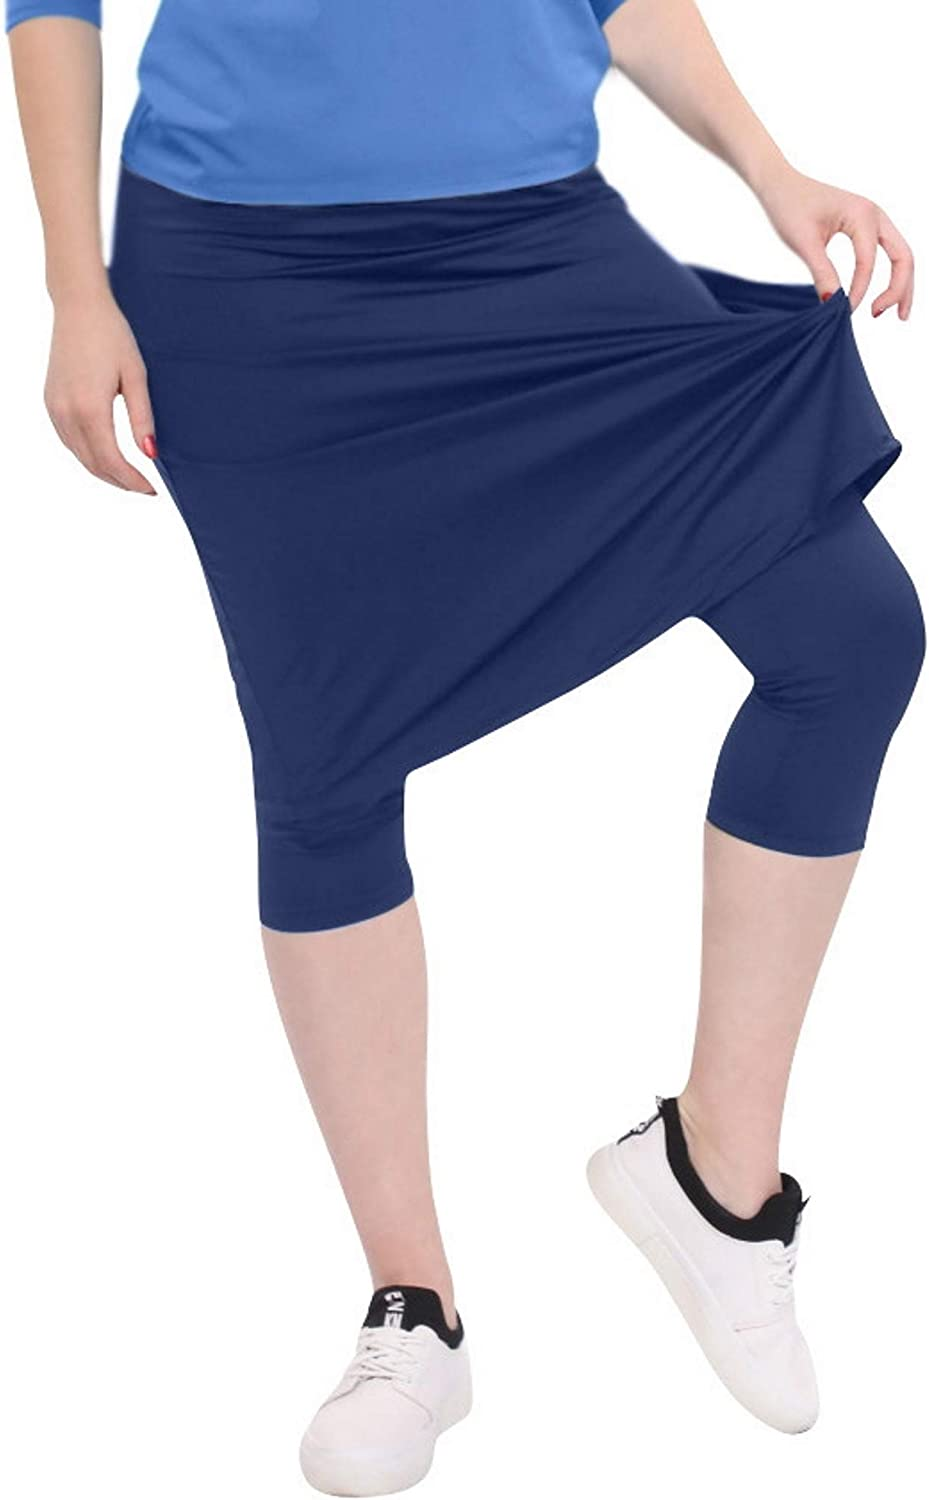 Kosher Casual Women's Knee Length Sports M with store Free shipping Leggings Skirt -